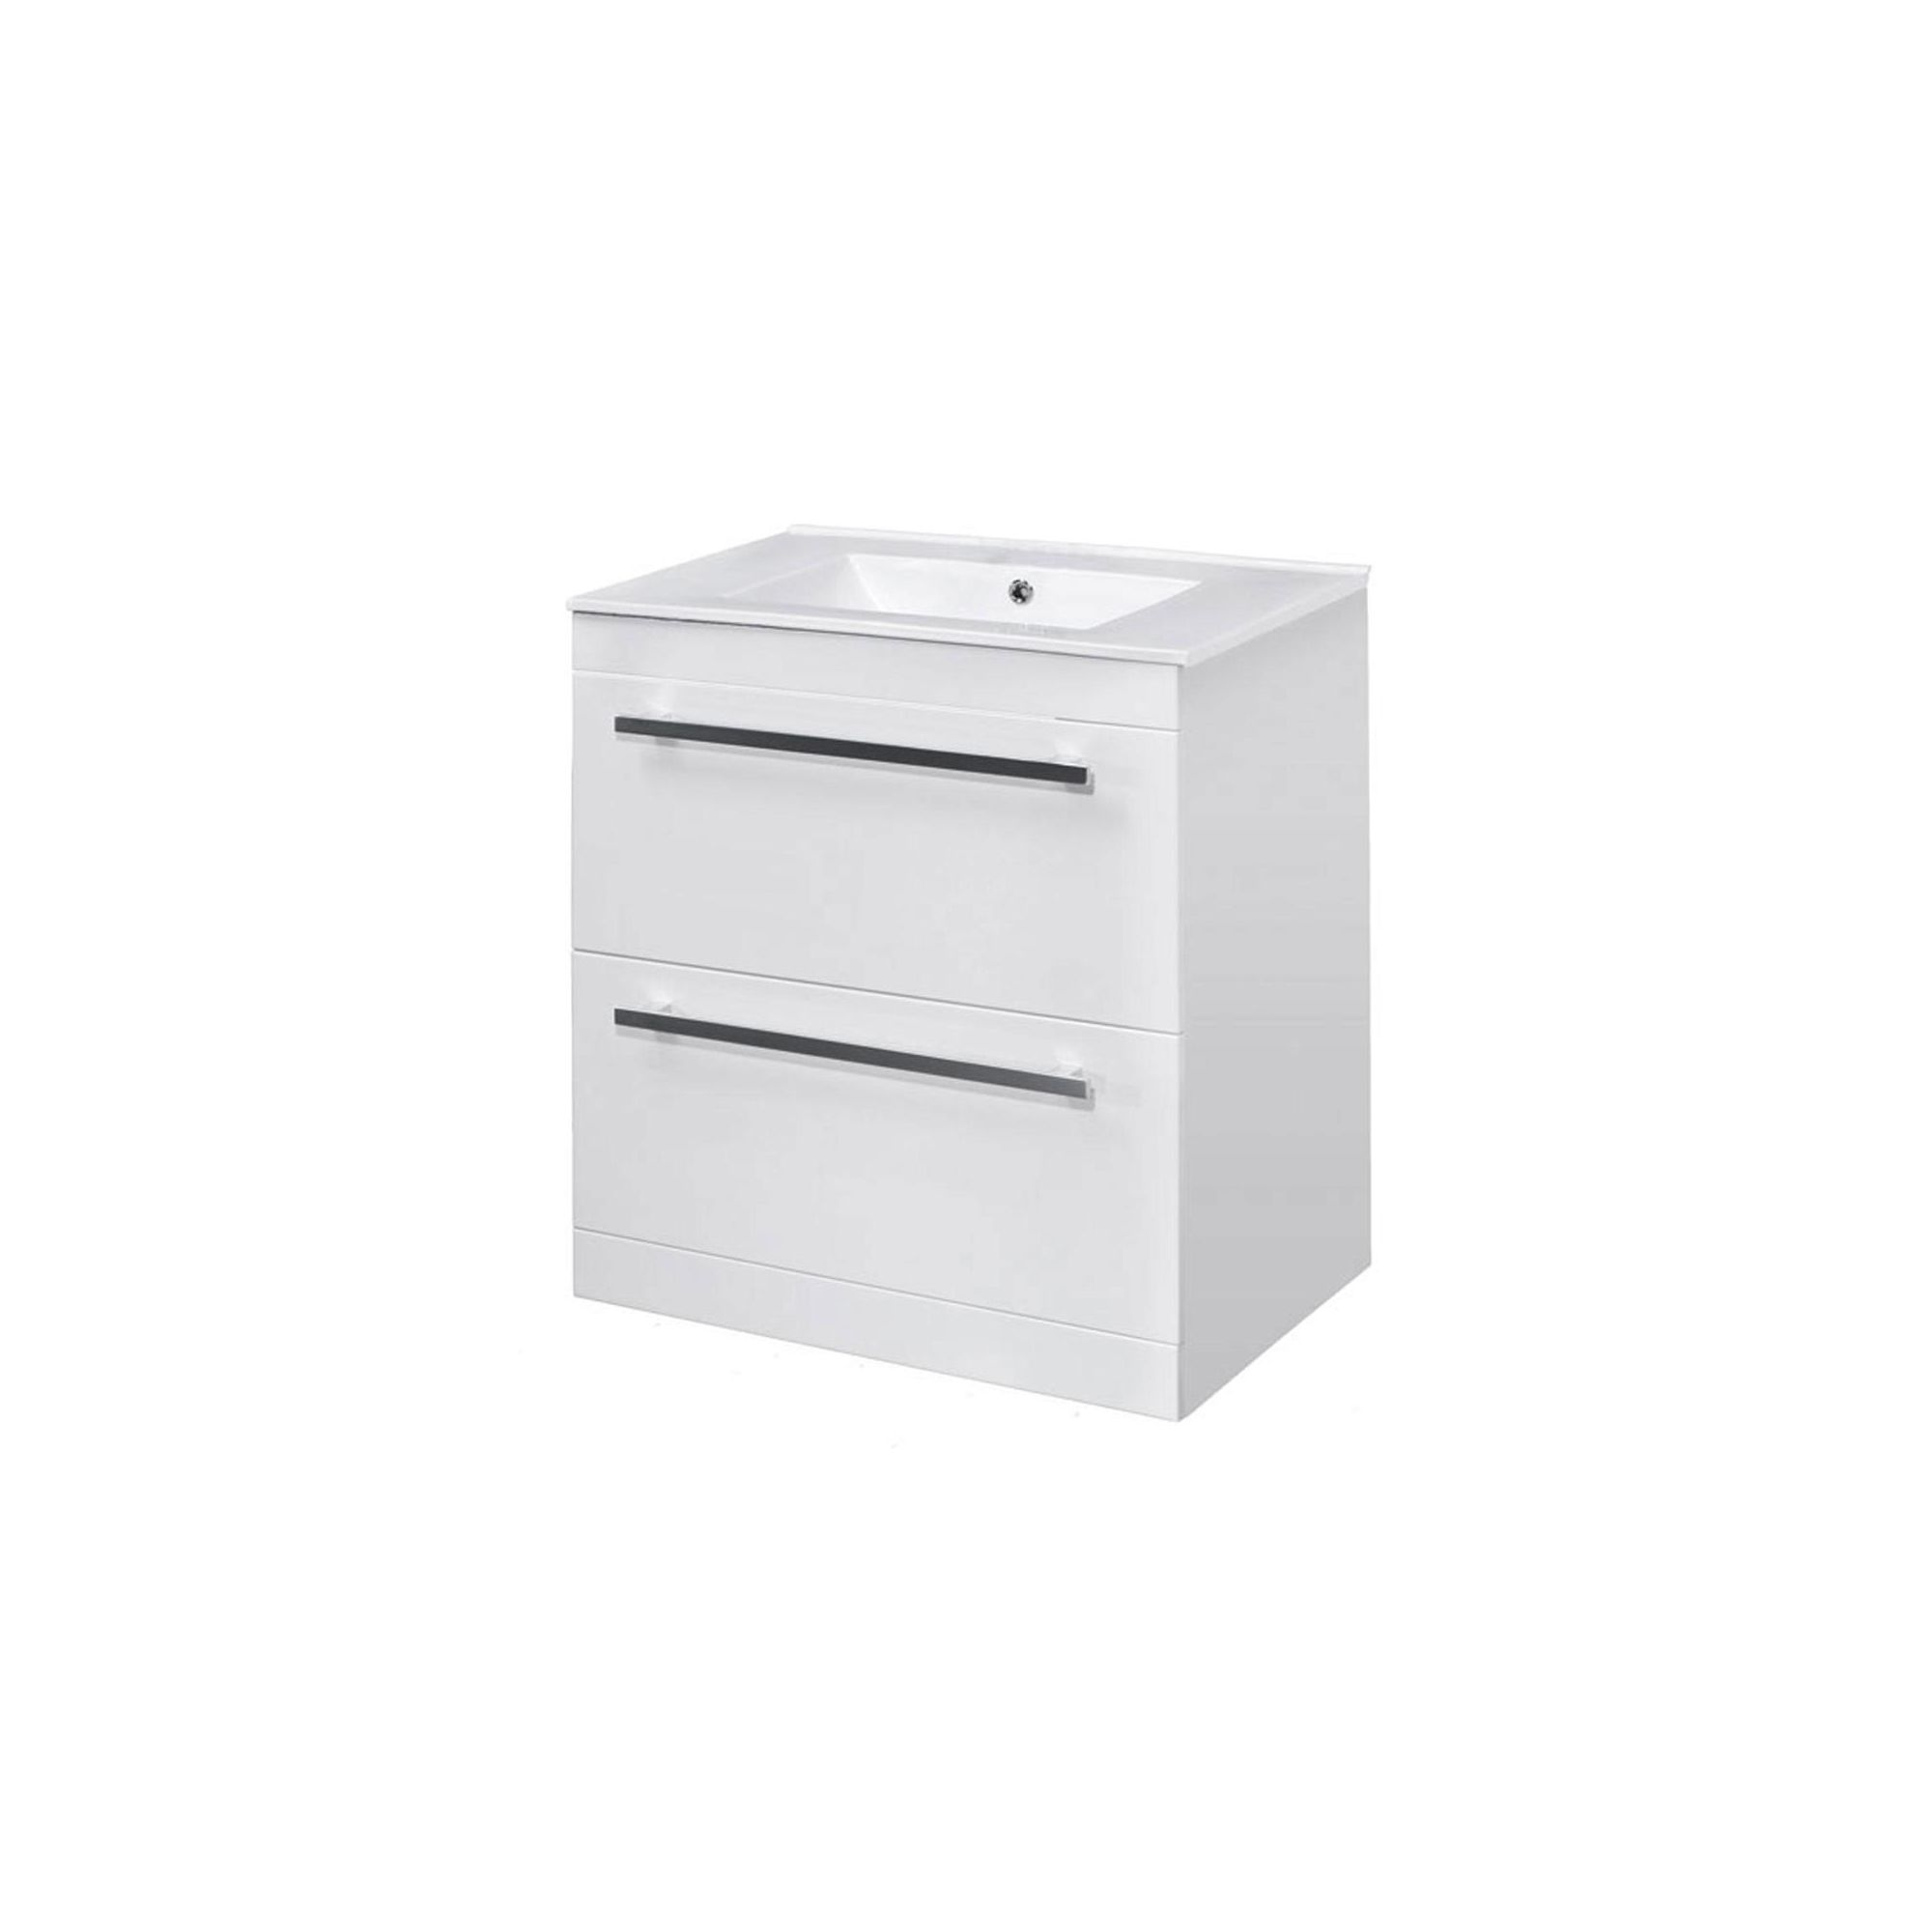 Premier Floor Standing Minimalist Basin Vanity Unit White 600mm